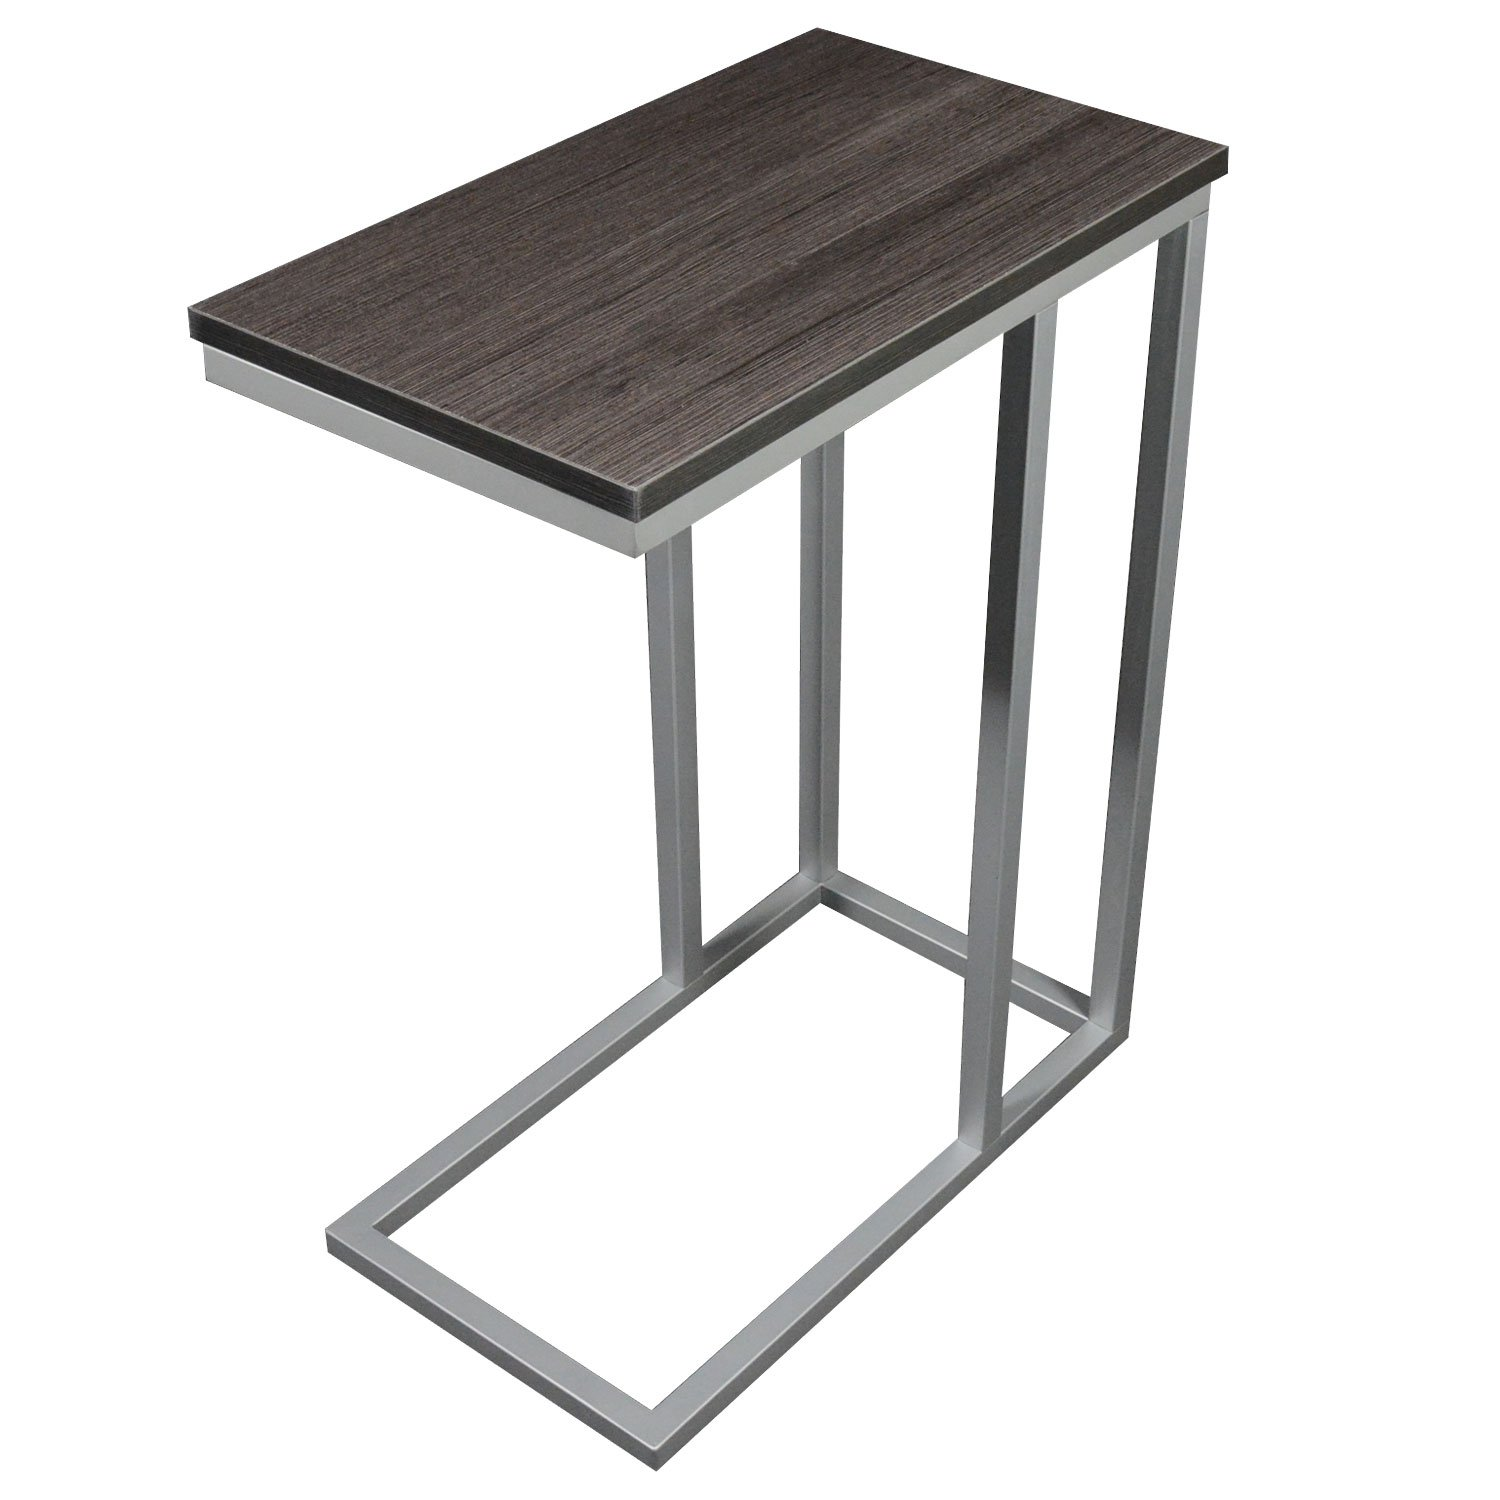 The Austin C Table/End Table/Laptop Stand, Zebra Wood Finish Laminate Top/Silver Base with Adjustable Glides by CKP